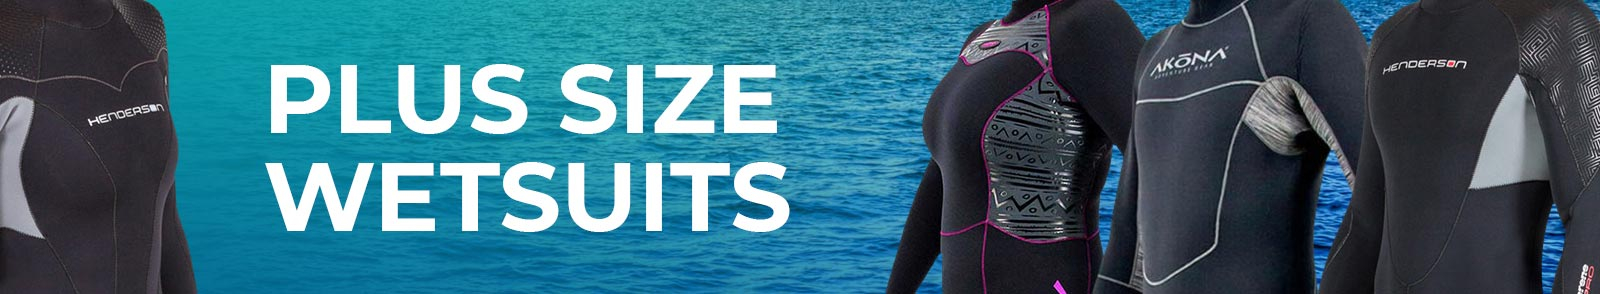 Plus Size Wetsuits for Women - Big and Tall Wetsuits for Men